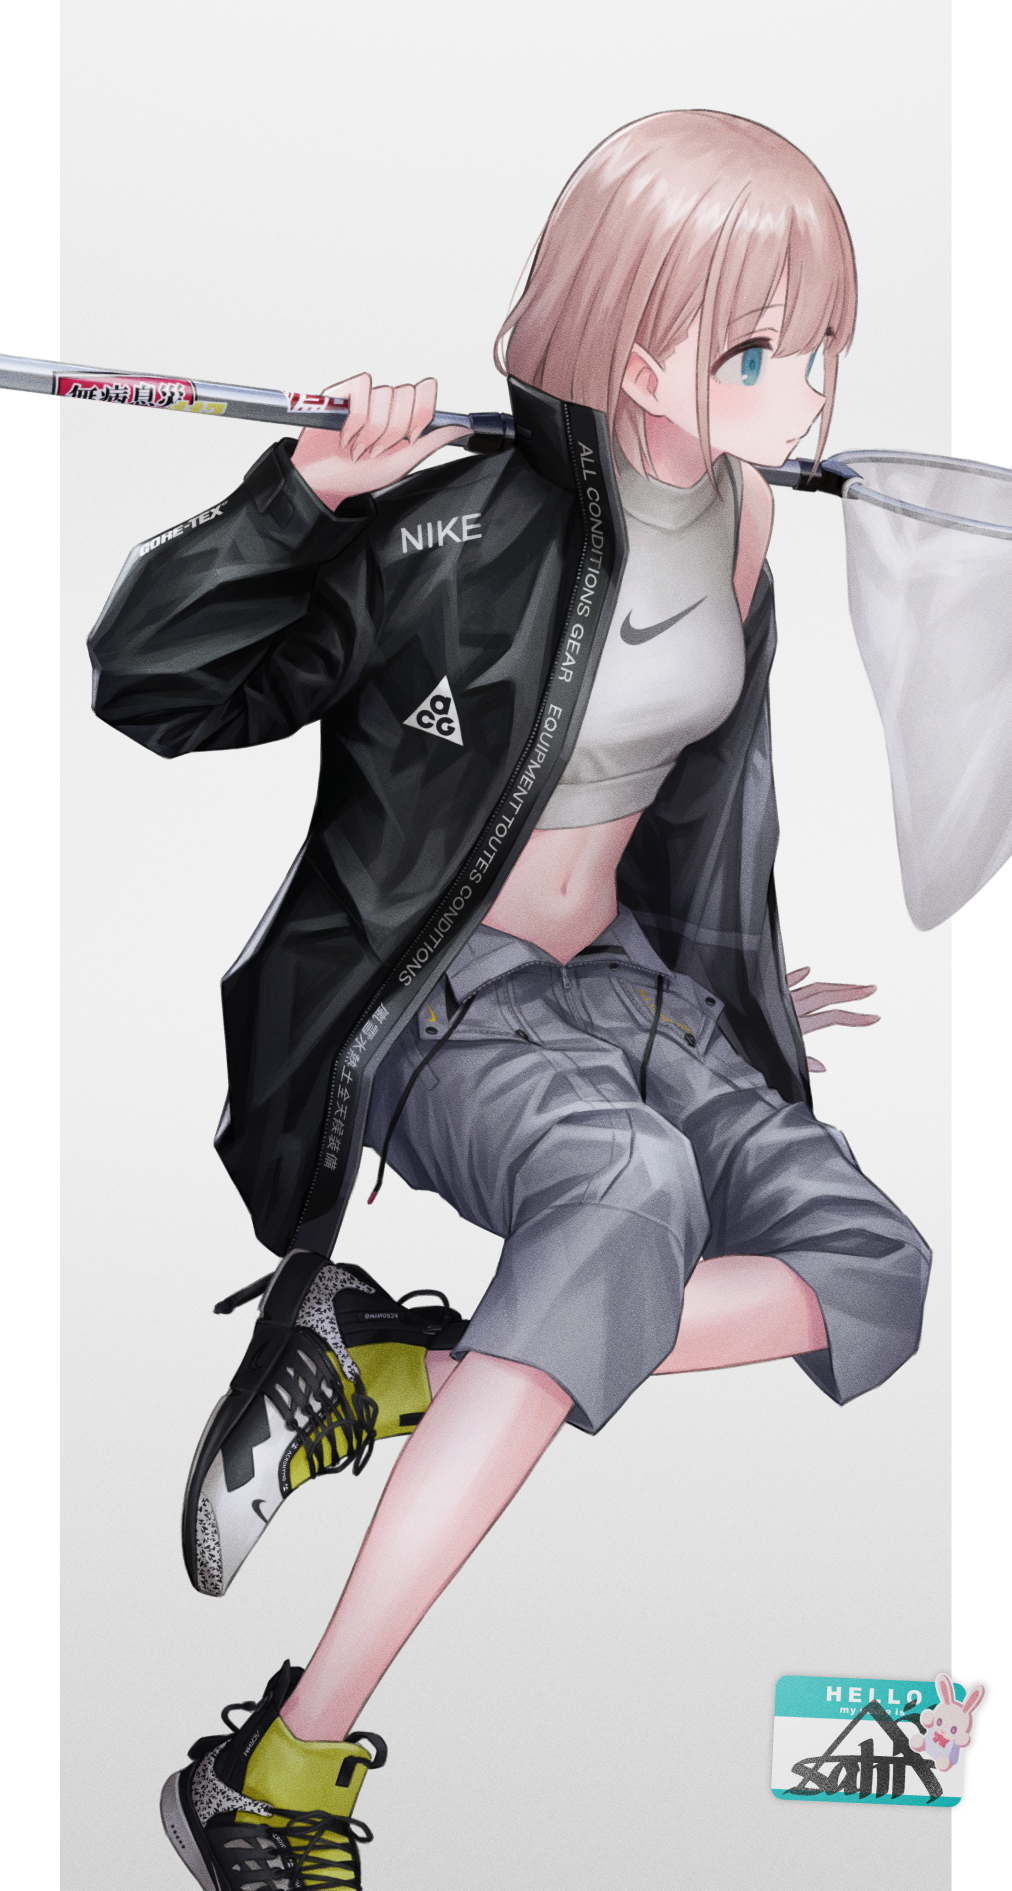 1girl 3mptydays arm_support bangs black_jacket blue_eyes breasts butterfly_net buttons character_name closed_mouth clothes_writing crop_top cross-laced_footwear drawstring eyebrows_visible_through_hair fingernails foot_out_of_frame grey_background grey_shorts hair_behind_ear hair_between_eyes hand_net hand_up high_collar highres holding_butterfly_net idolmaster idolmaster_shiny_colors invisible_chair jacket leg_up light_brown_hair long_sleeves looking_away medium_breasts midriff name_tag navel nike off_shoulder open_clothes open_fly open_jacket open_shorts outside_border pillarboxed print_footwear print_shirt serizawa_asahi shiny shiny_hair shirt shoes short_hair shorts sidelocks simple_background single_bare_shoulder sitting sleeveless sleeveless_shirt sneakers solo stomach two-tone_footwear unzipped white_footwear white_shirt yellow_footwear